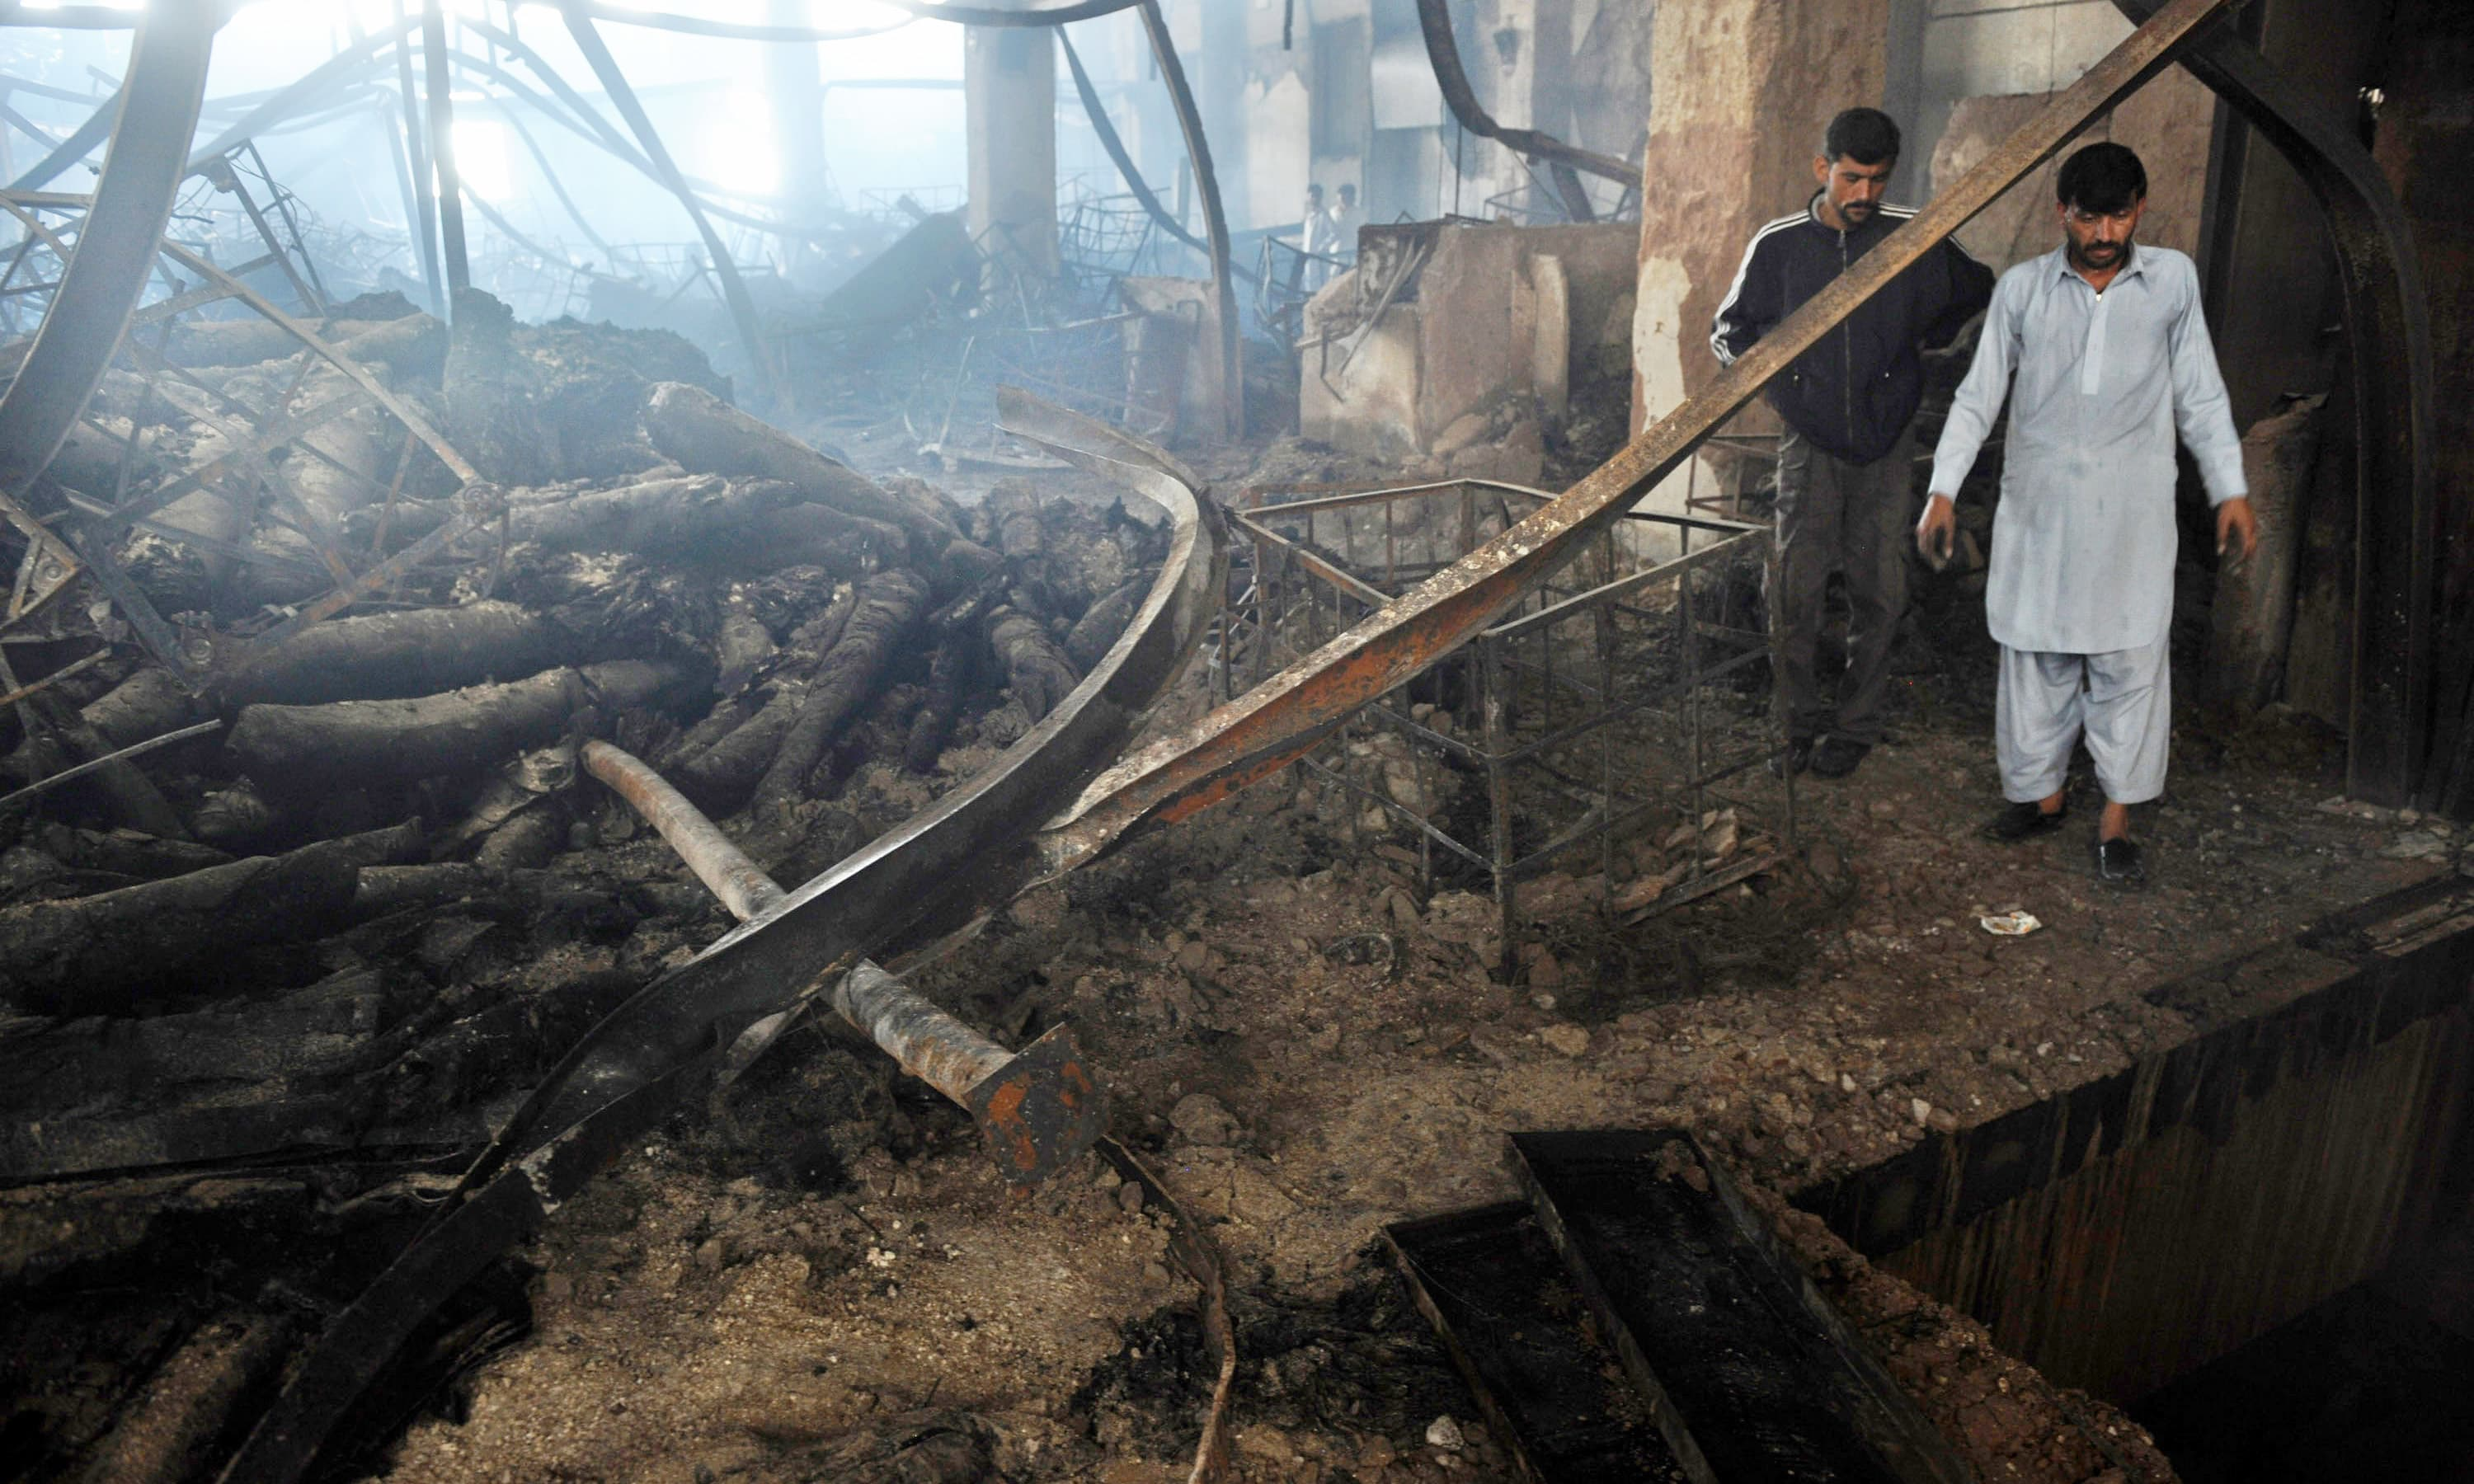 People gather in the factory following the fire in which at least 289 people died. —AFP/File